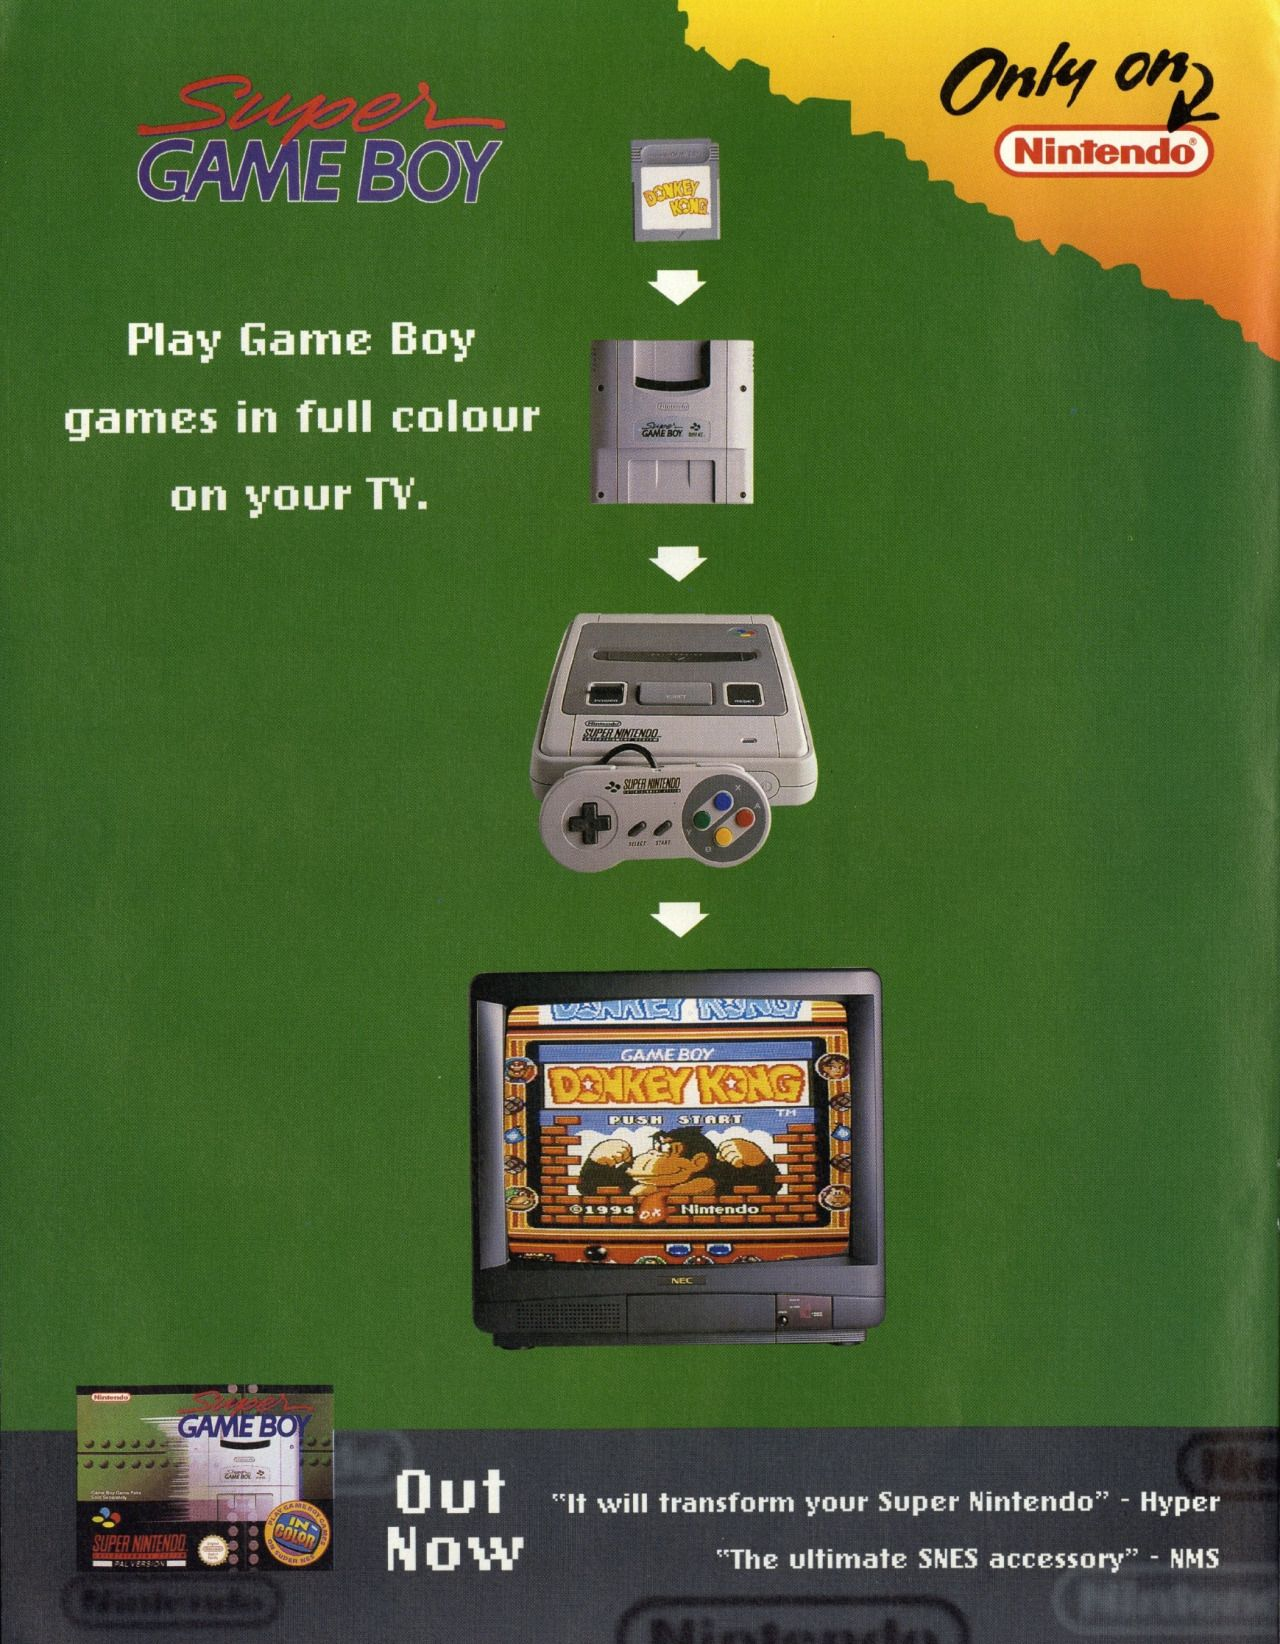 Old Game Mags Photo Retro Games Poster Gameboy Classic Video Games